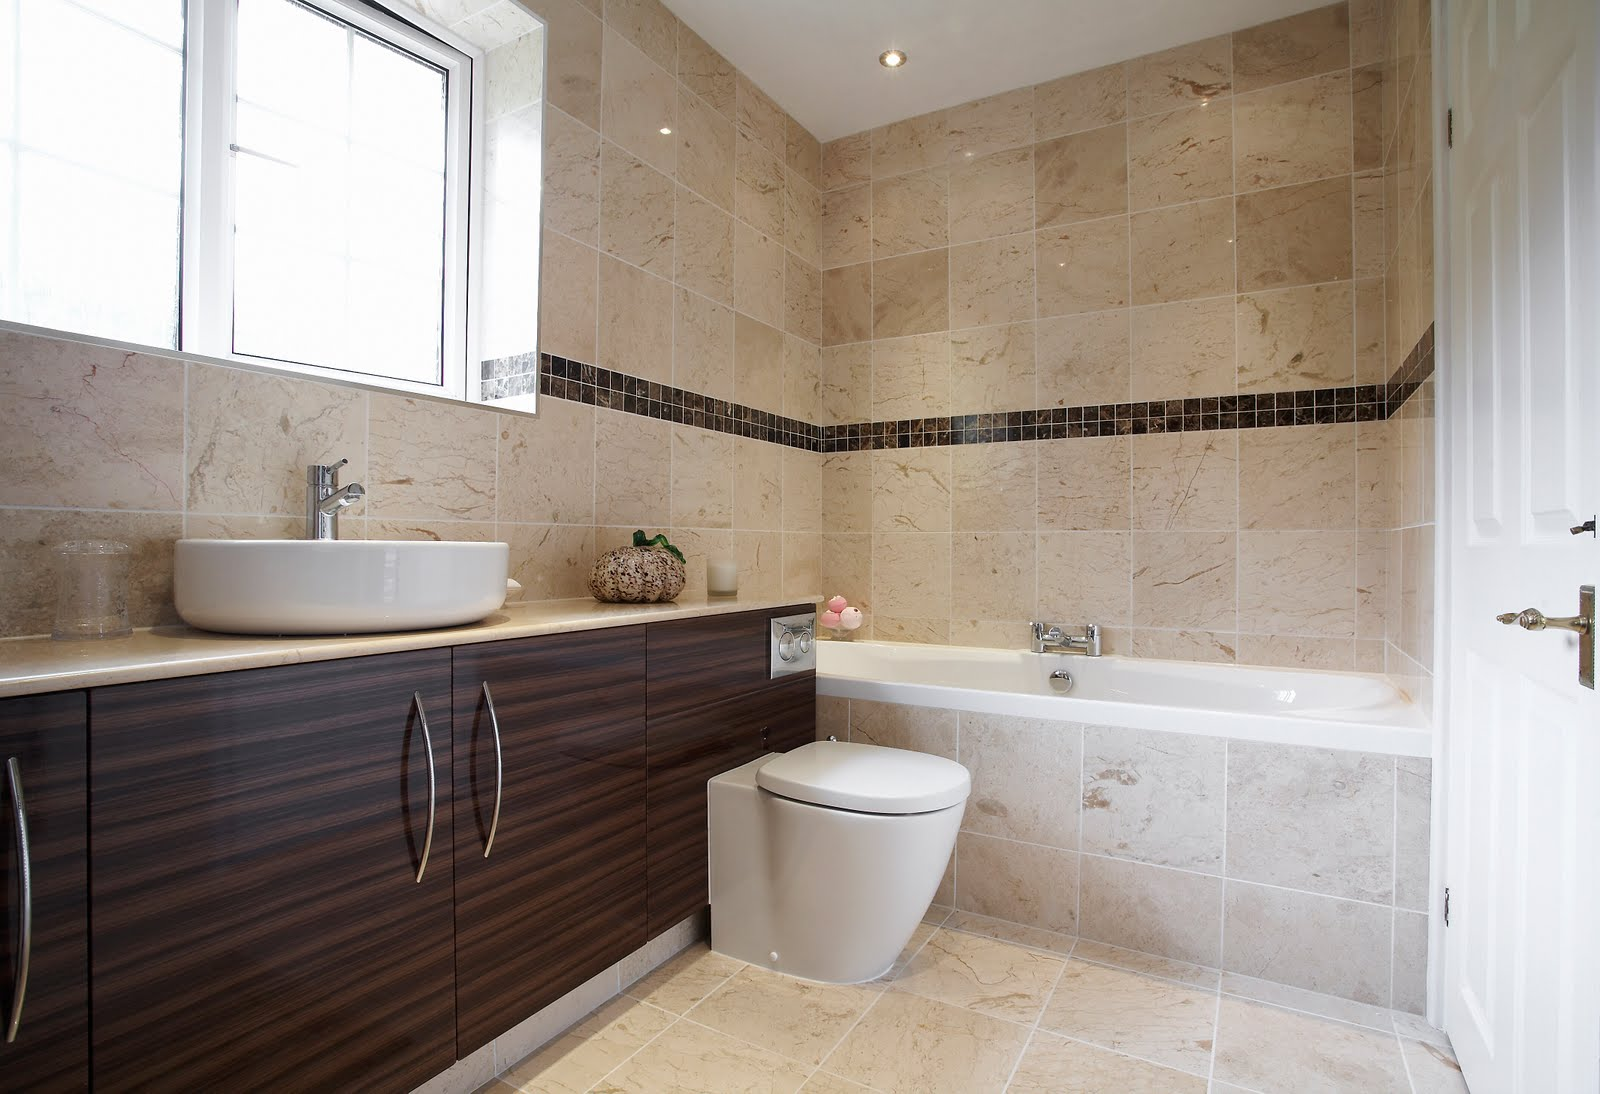 Cymru kitchens ltd cymru kitchens bathrooms for Bathroom designs images